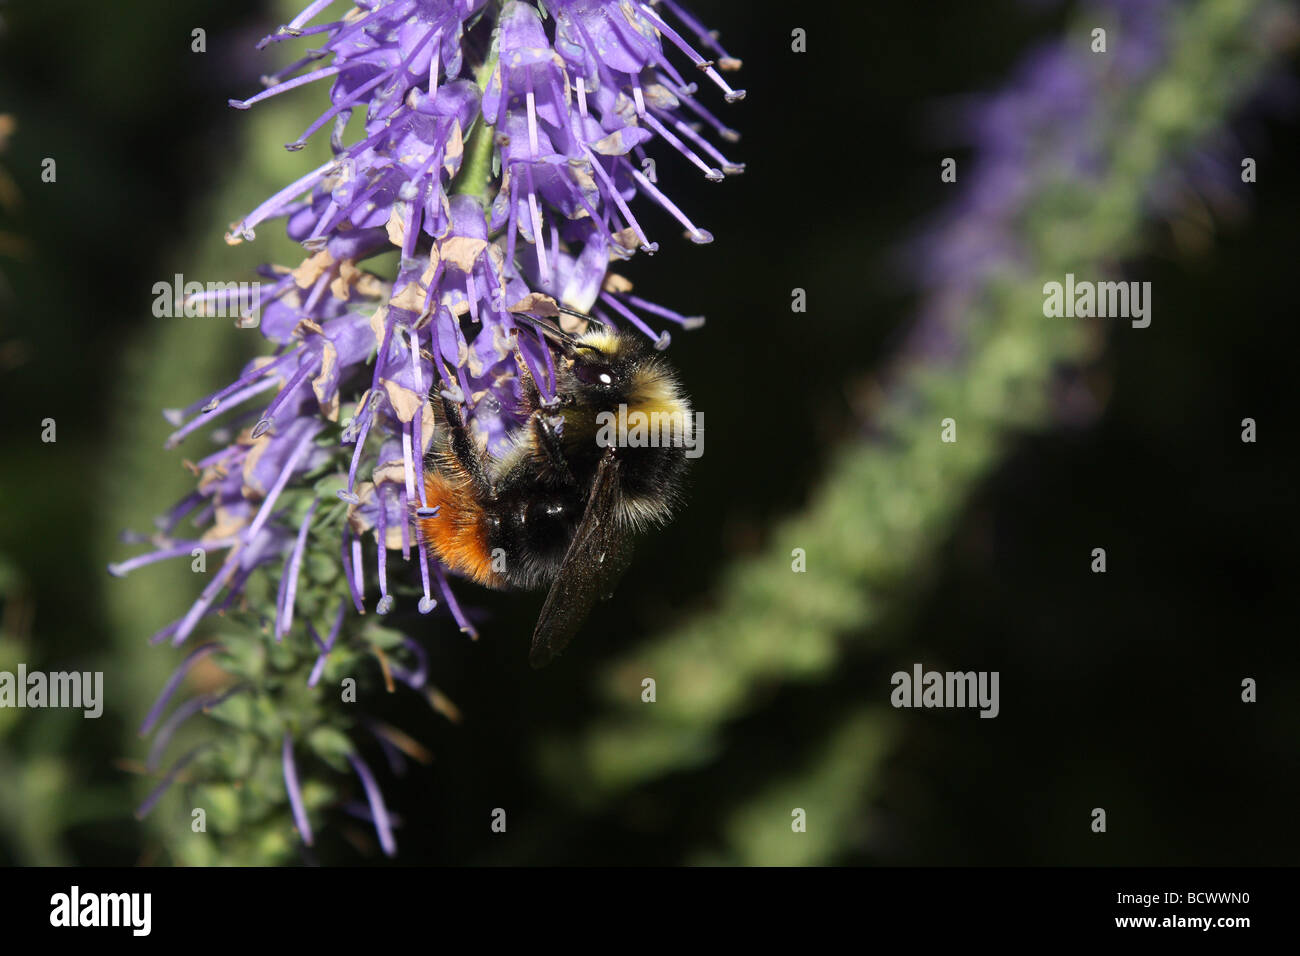 A bumble bee feeding on nectar from Buddleia flowers. - Stock Image